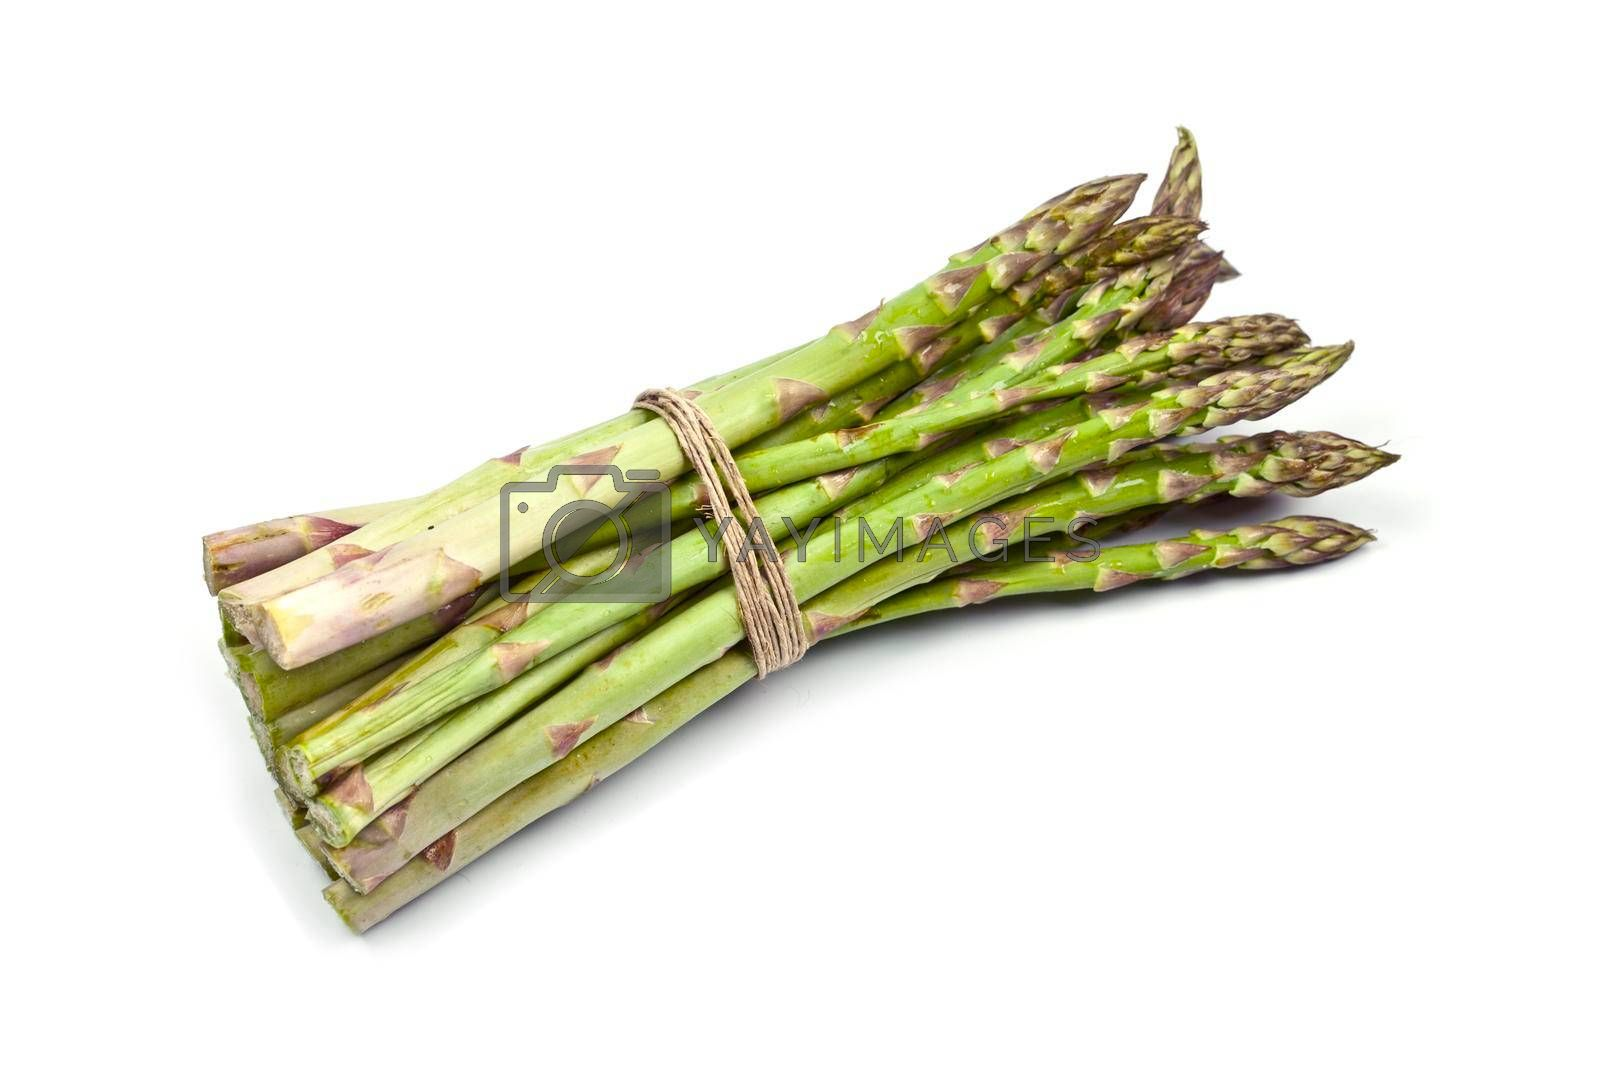 Bunch of fresh raw garden asparagus isolated on white background. Green spring vegetables. Edible sprouts of asparagus.